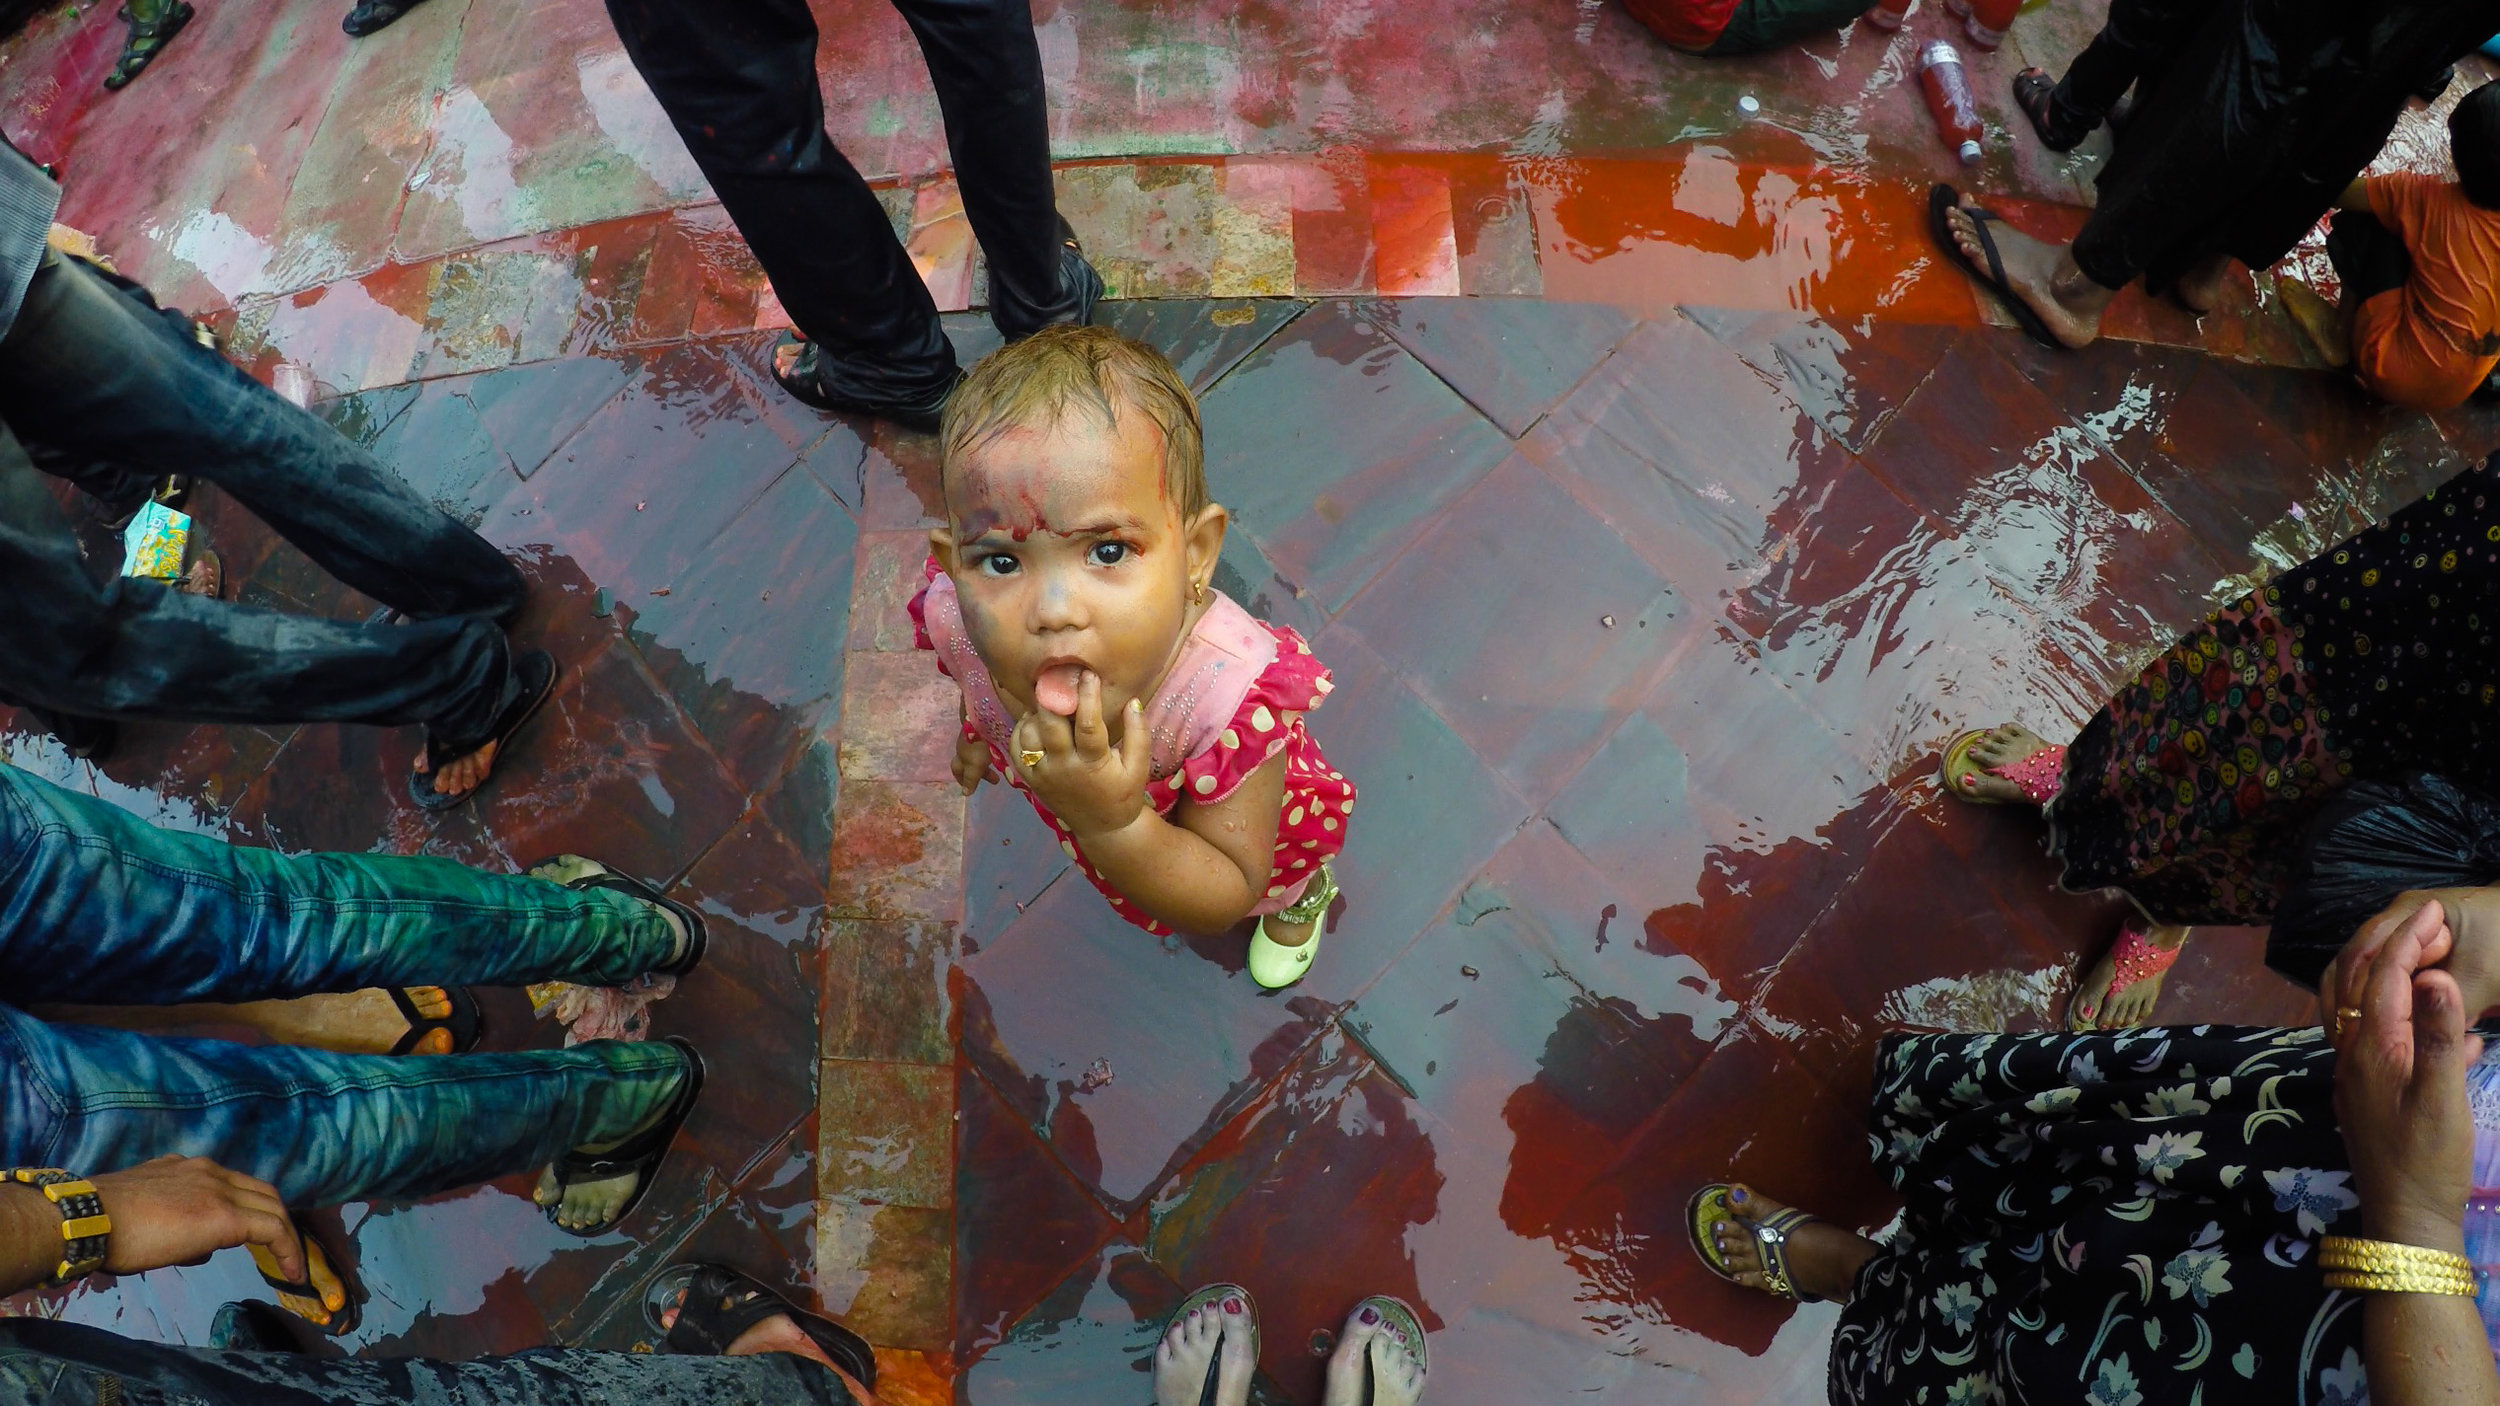 A young participant in the 2017 Holi Festival. Shot using a waterproof GoPro Hero 4. Kandawgyi Lake, Yangon.